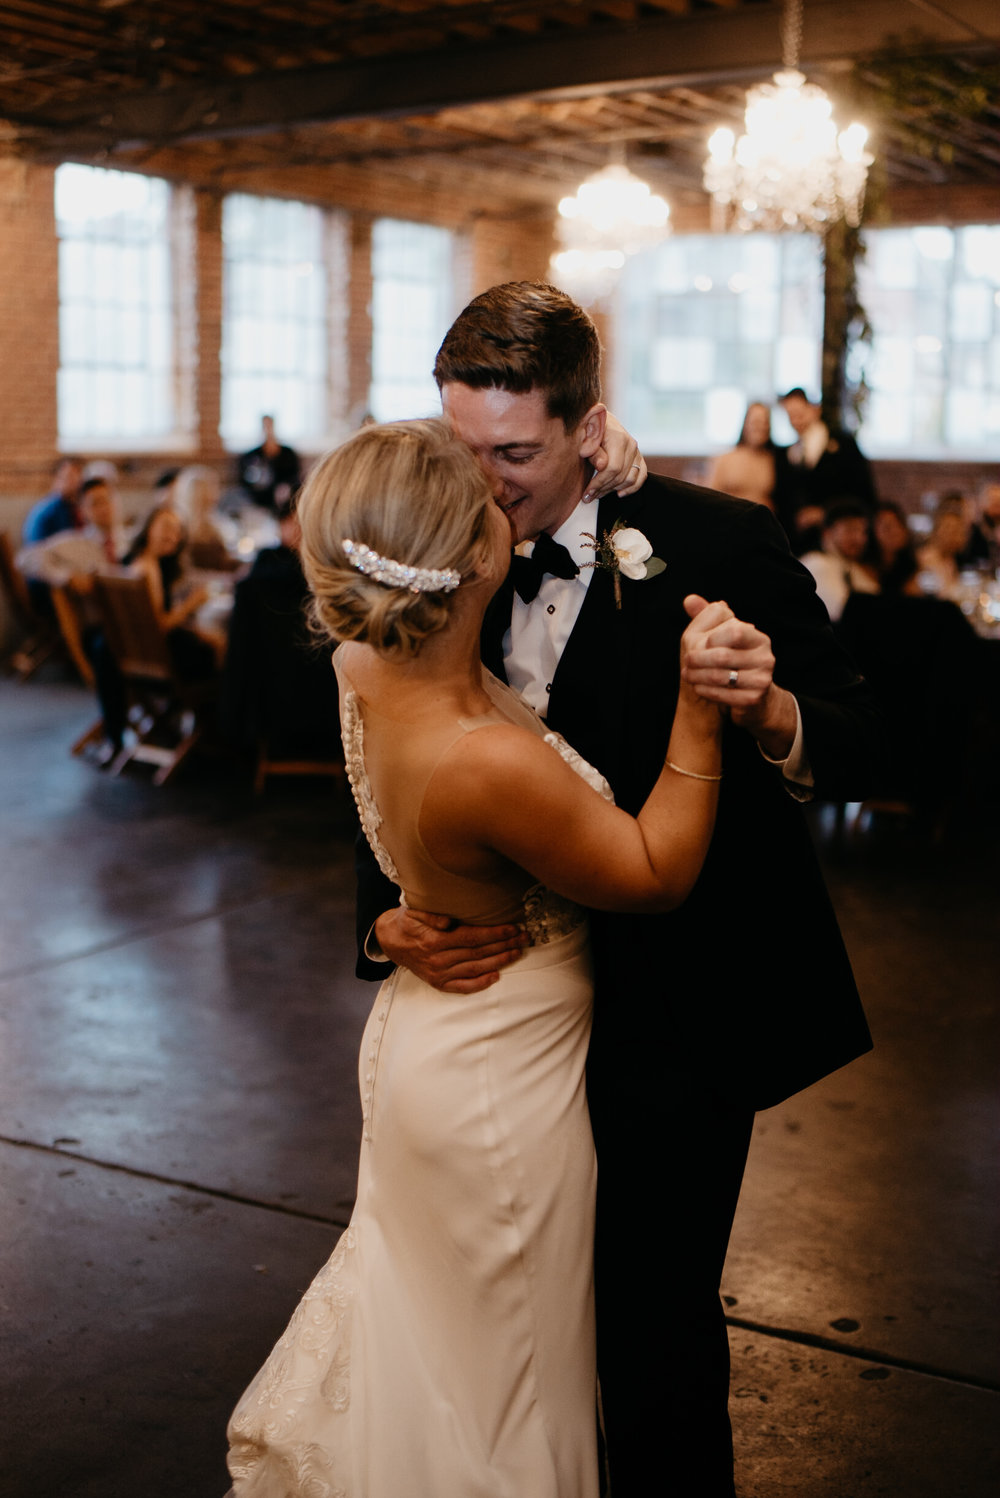 First dance at wedding at Moss Denver. Colorado wedding photographer.